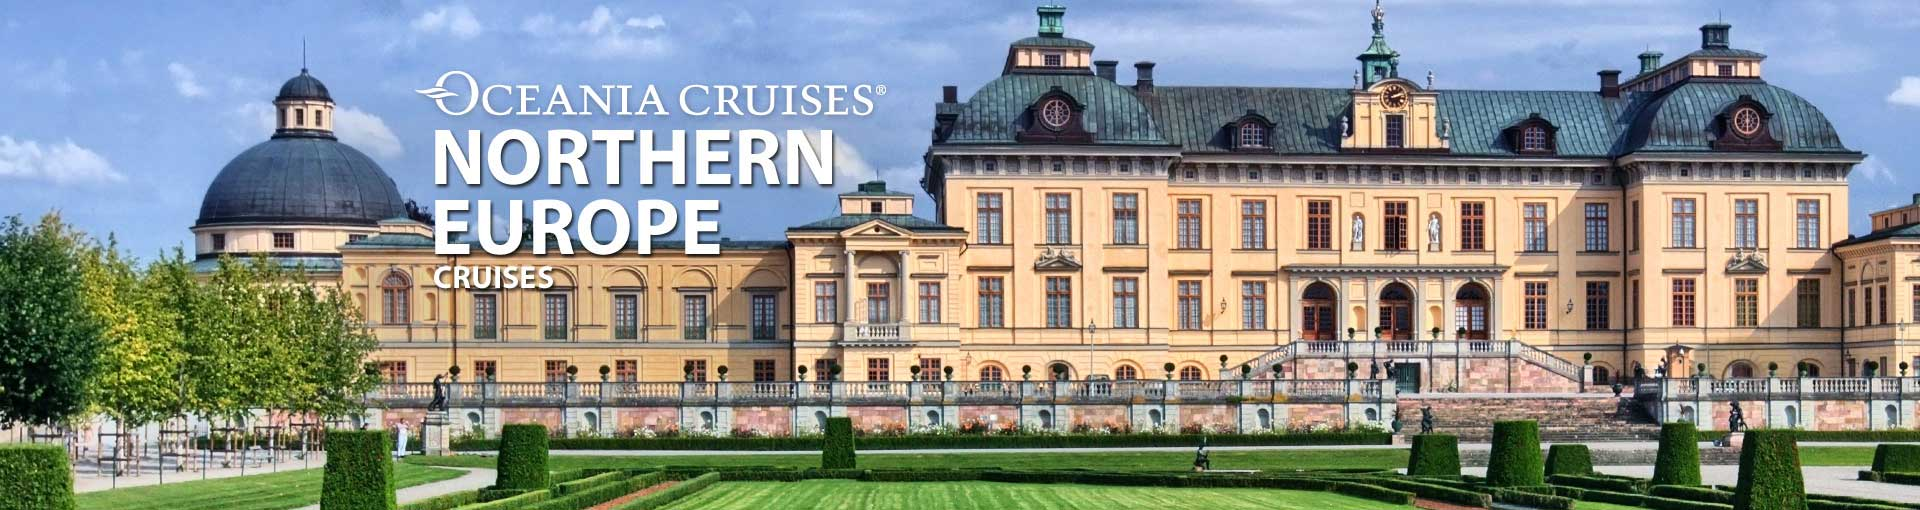 Oceania Cruises Northern Europe Cruises